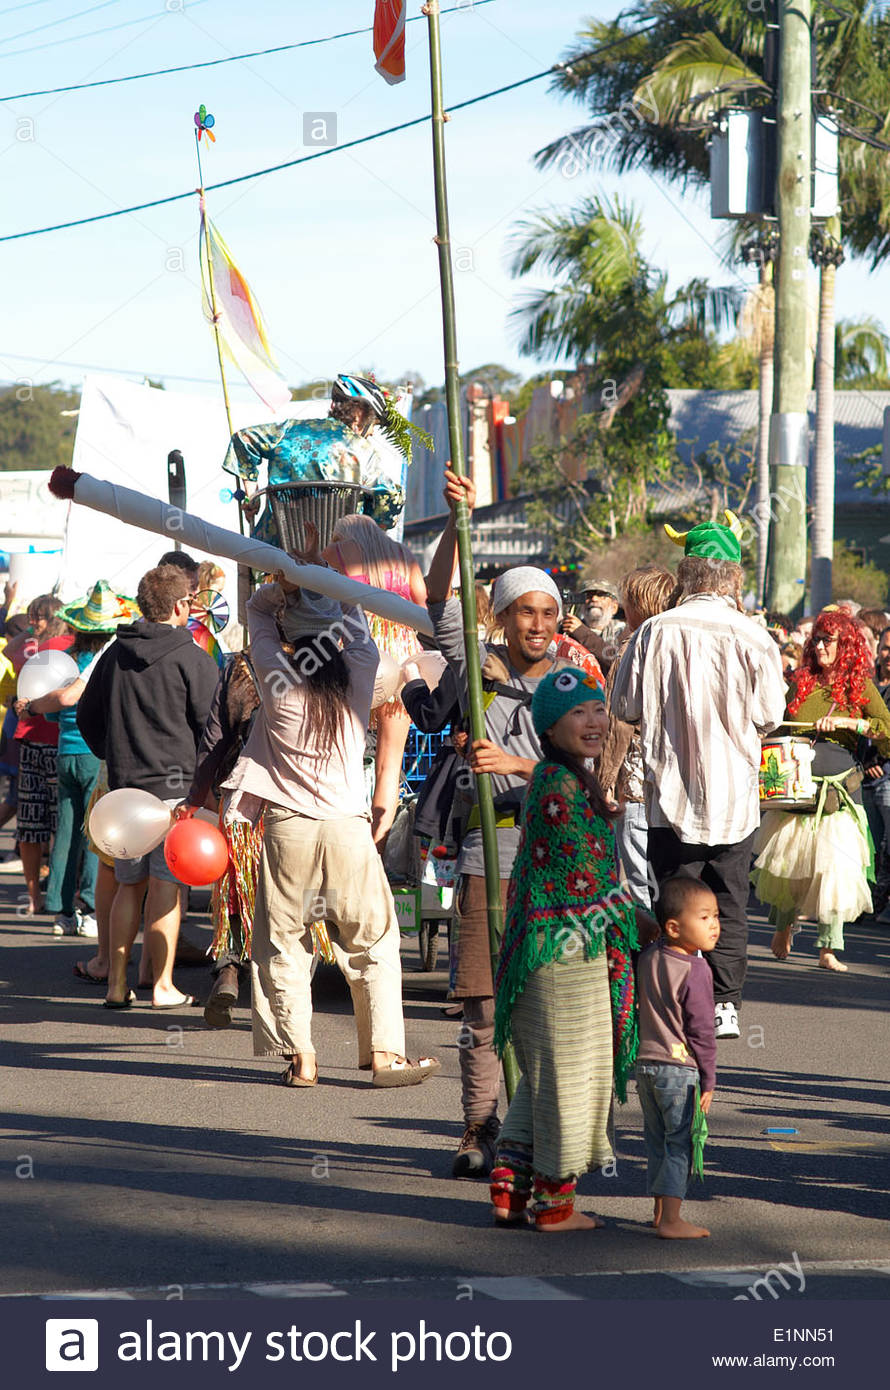 A young Japanese couple - the man holding a long bamboo flag - with their boy child, turn smiling, from the rear of the 2014 Nimbin Mardigrass parade. - Stock Image